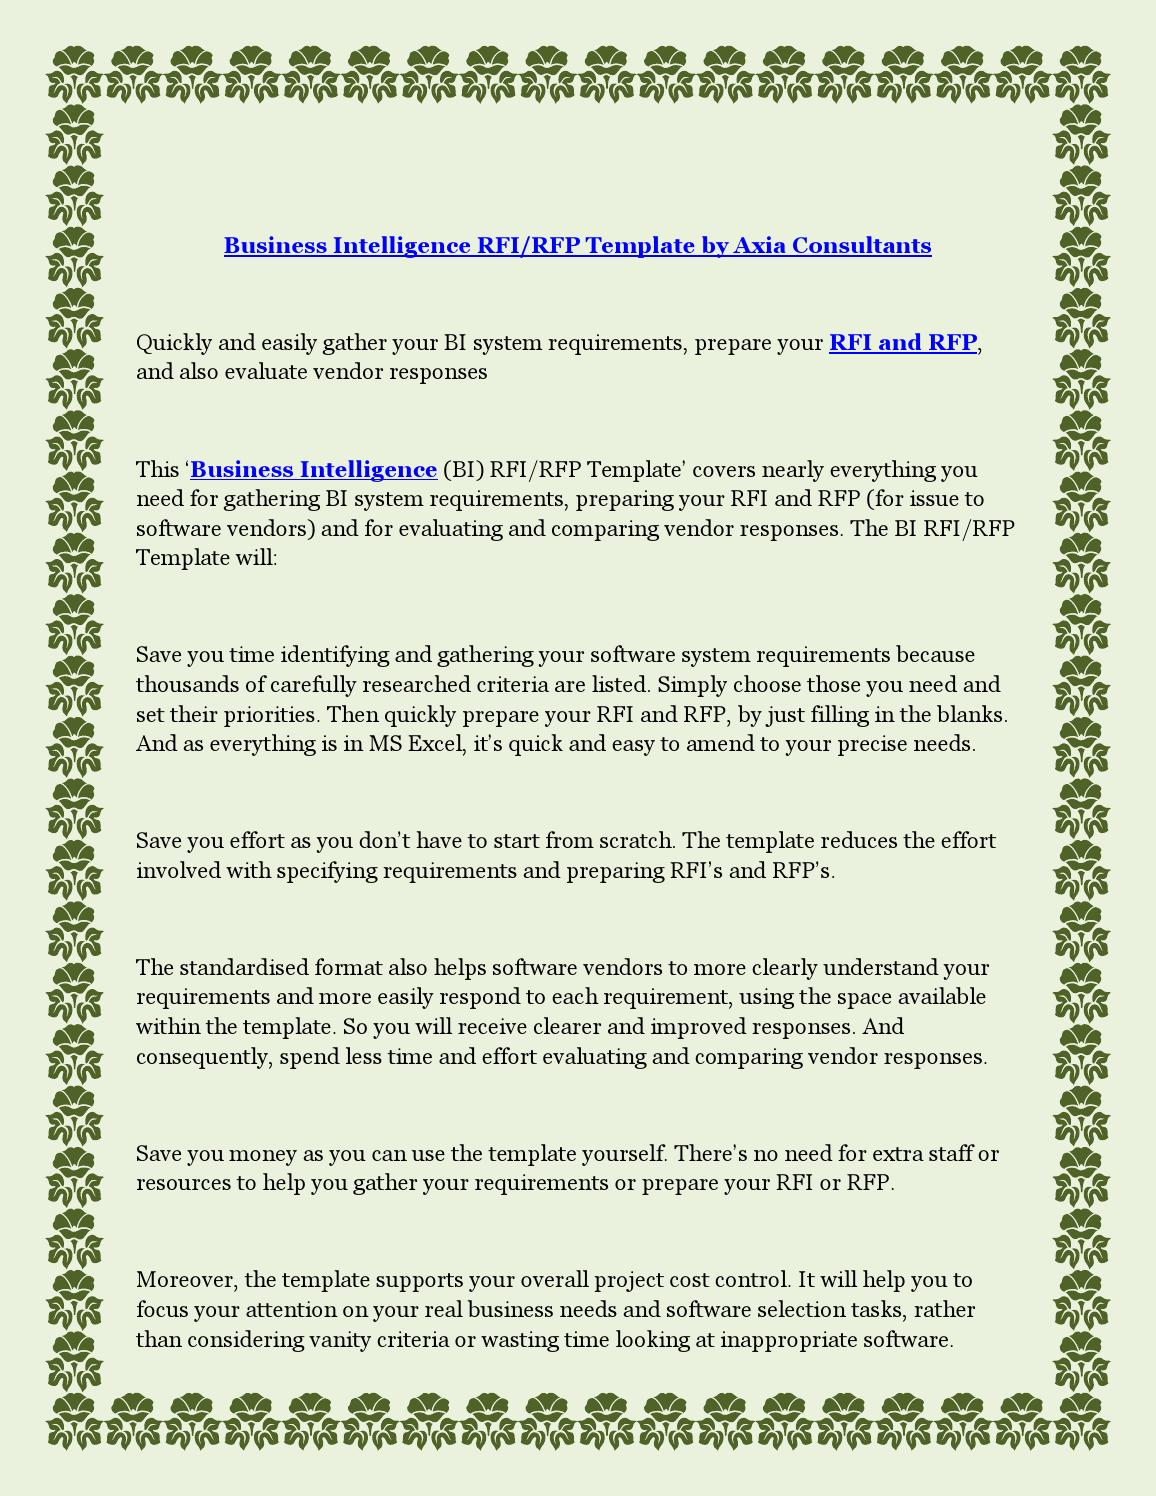 Business intelligence rfi rfp template by axia consultants by business intelligence rfi rfp template by axia consultants by rustamdrov issuu flashek Images